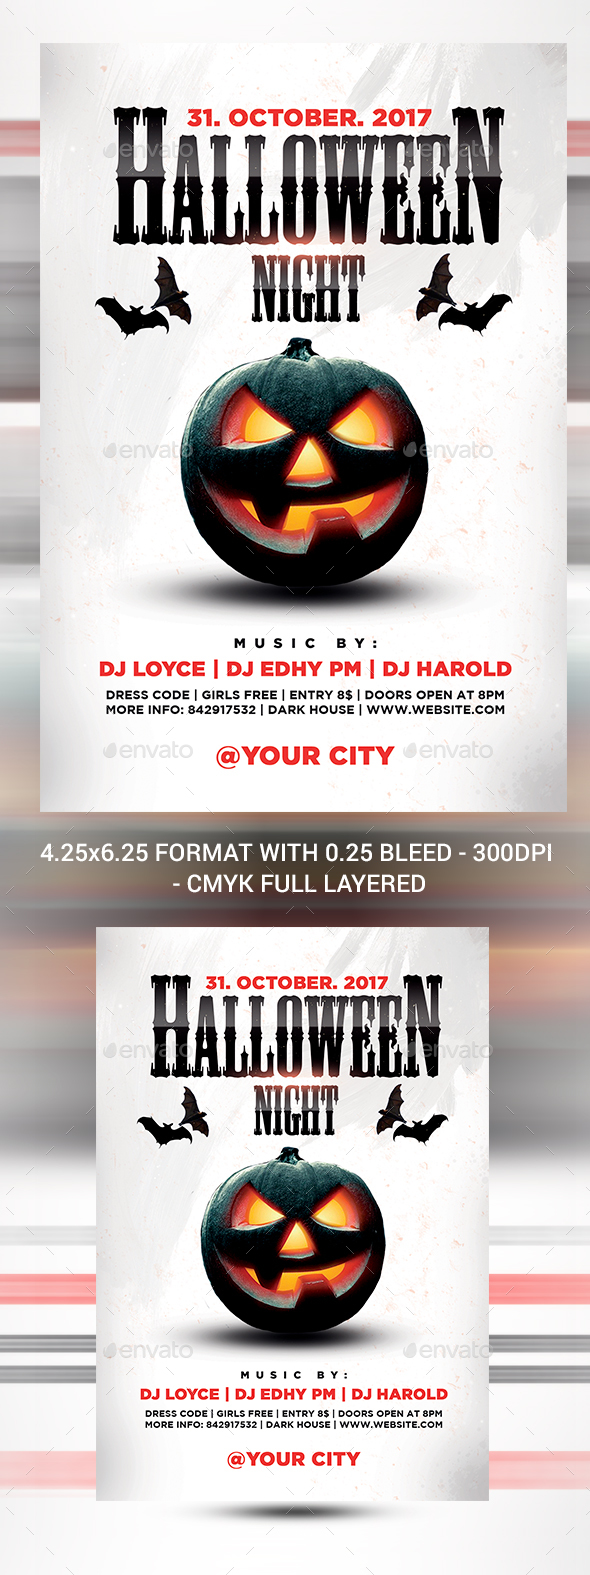 Halloween Night Flyer - Print Templates